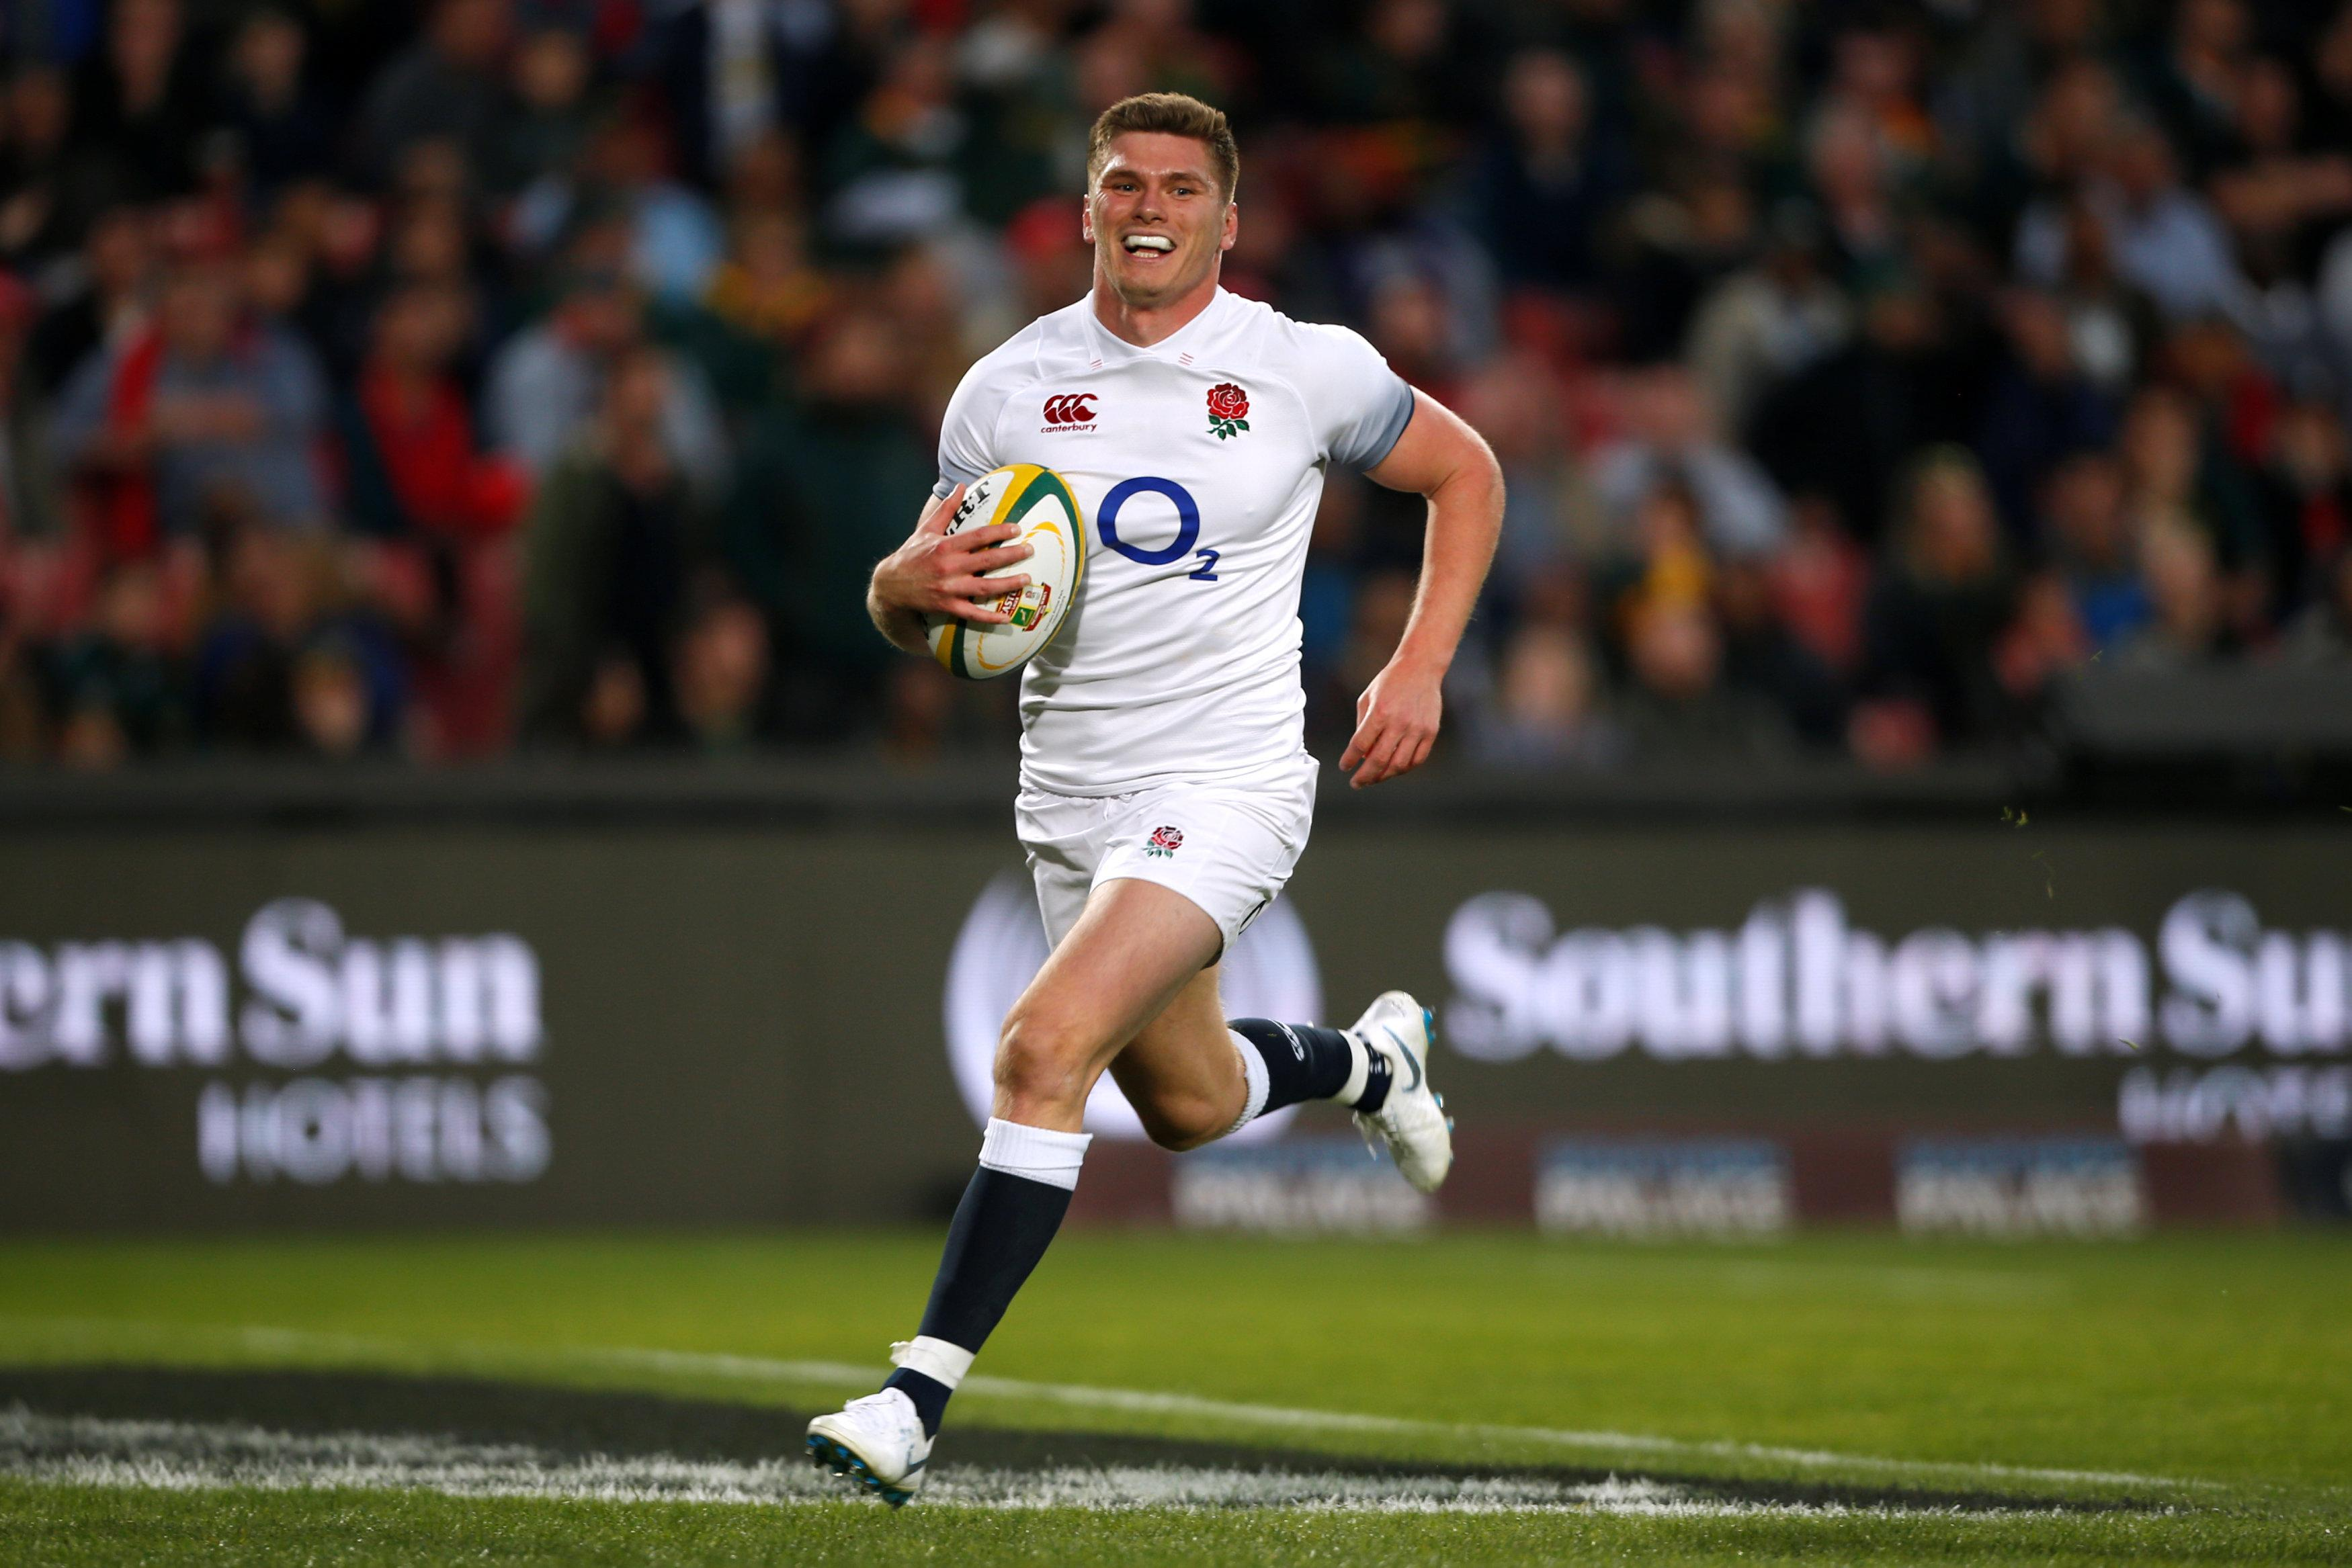 Owen Farrell scored a try in the 18th minute to put England 24-3 up